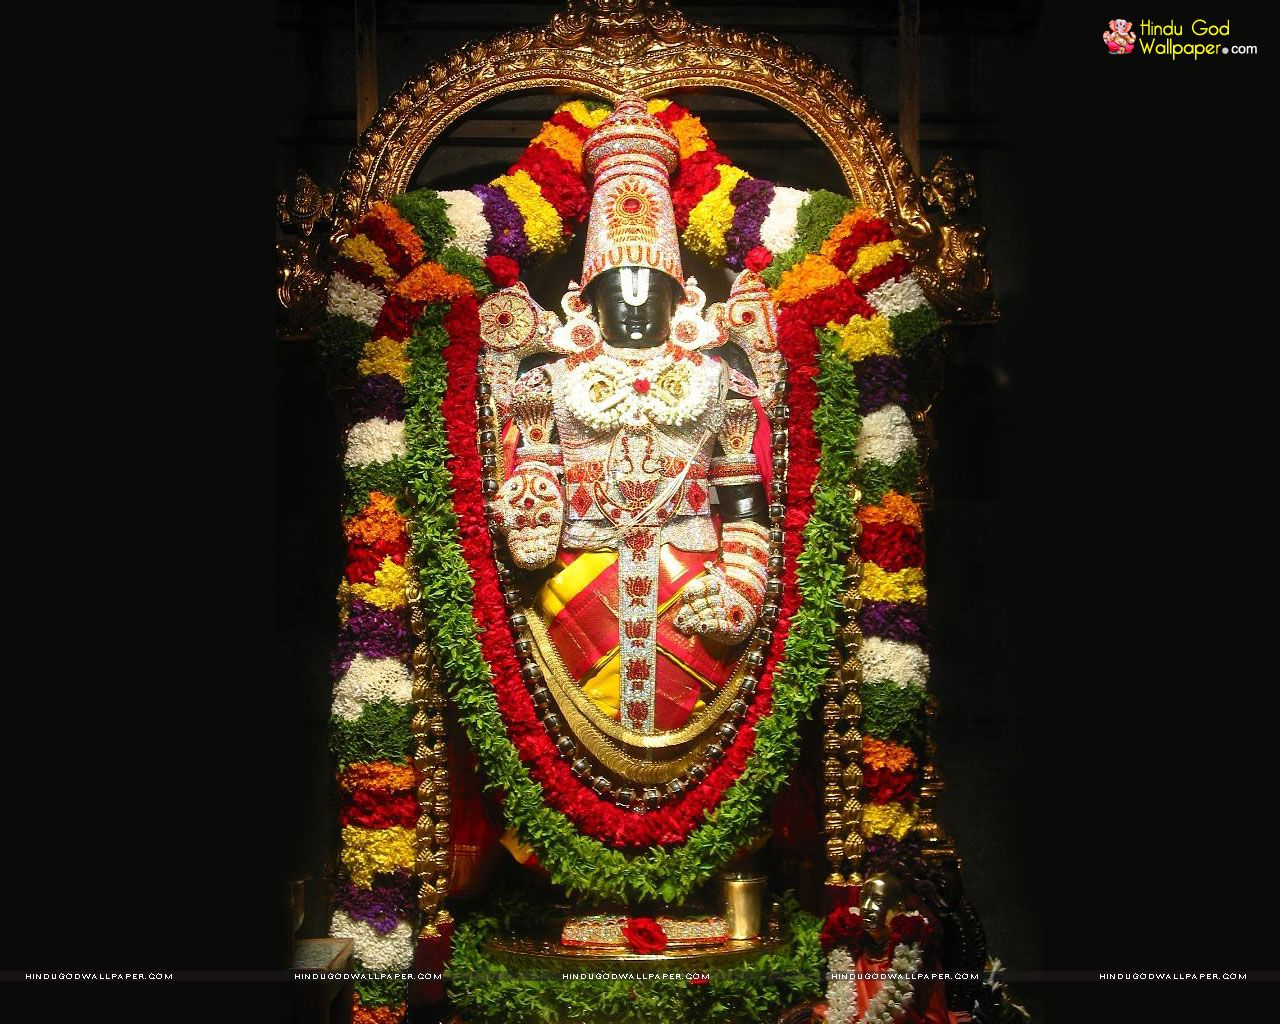 Lord Venkateswara Wallpaper Hd High Resolution Download Lord Balaji Lord Hanuman Lord Vishnu Wallpapers